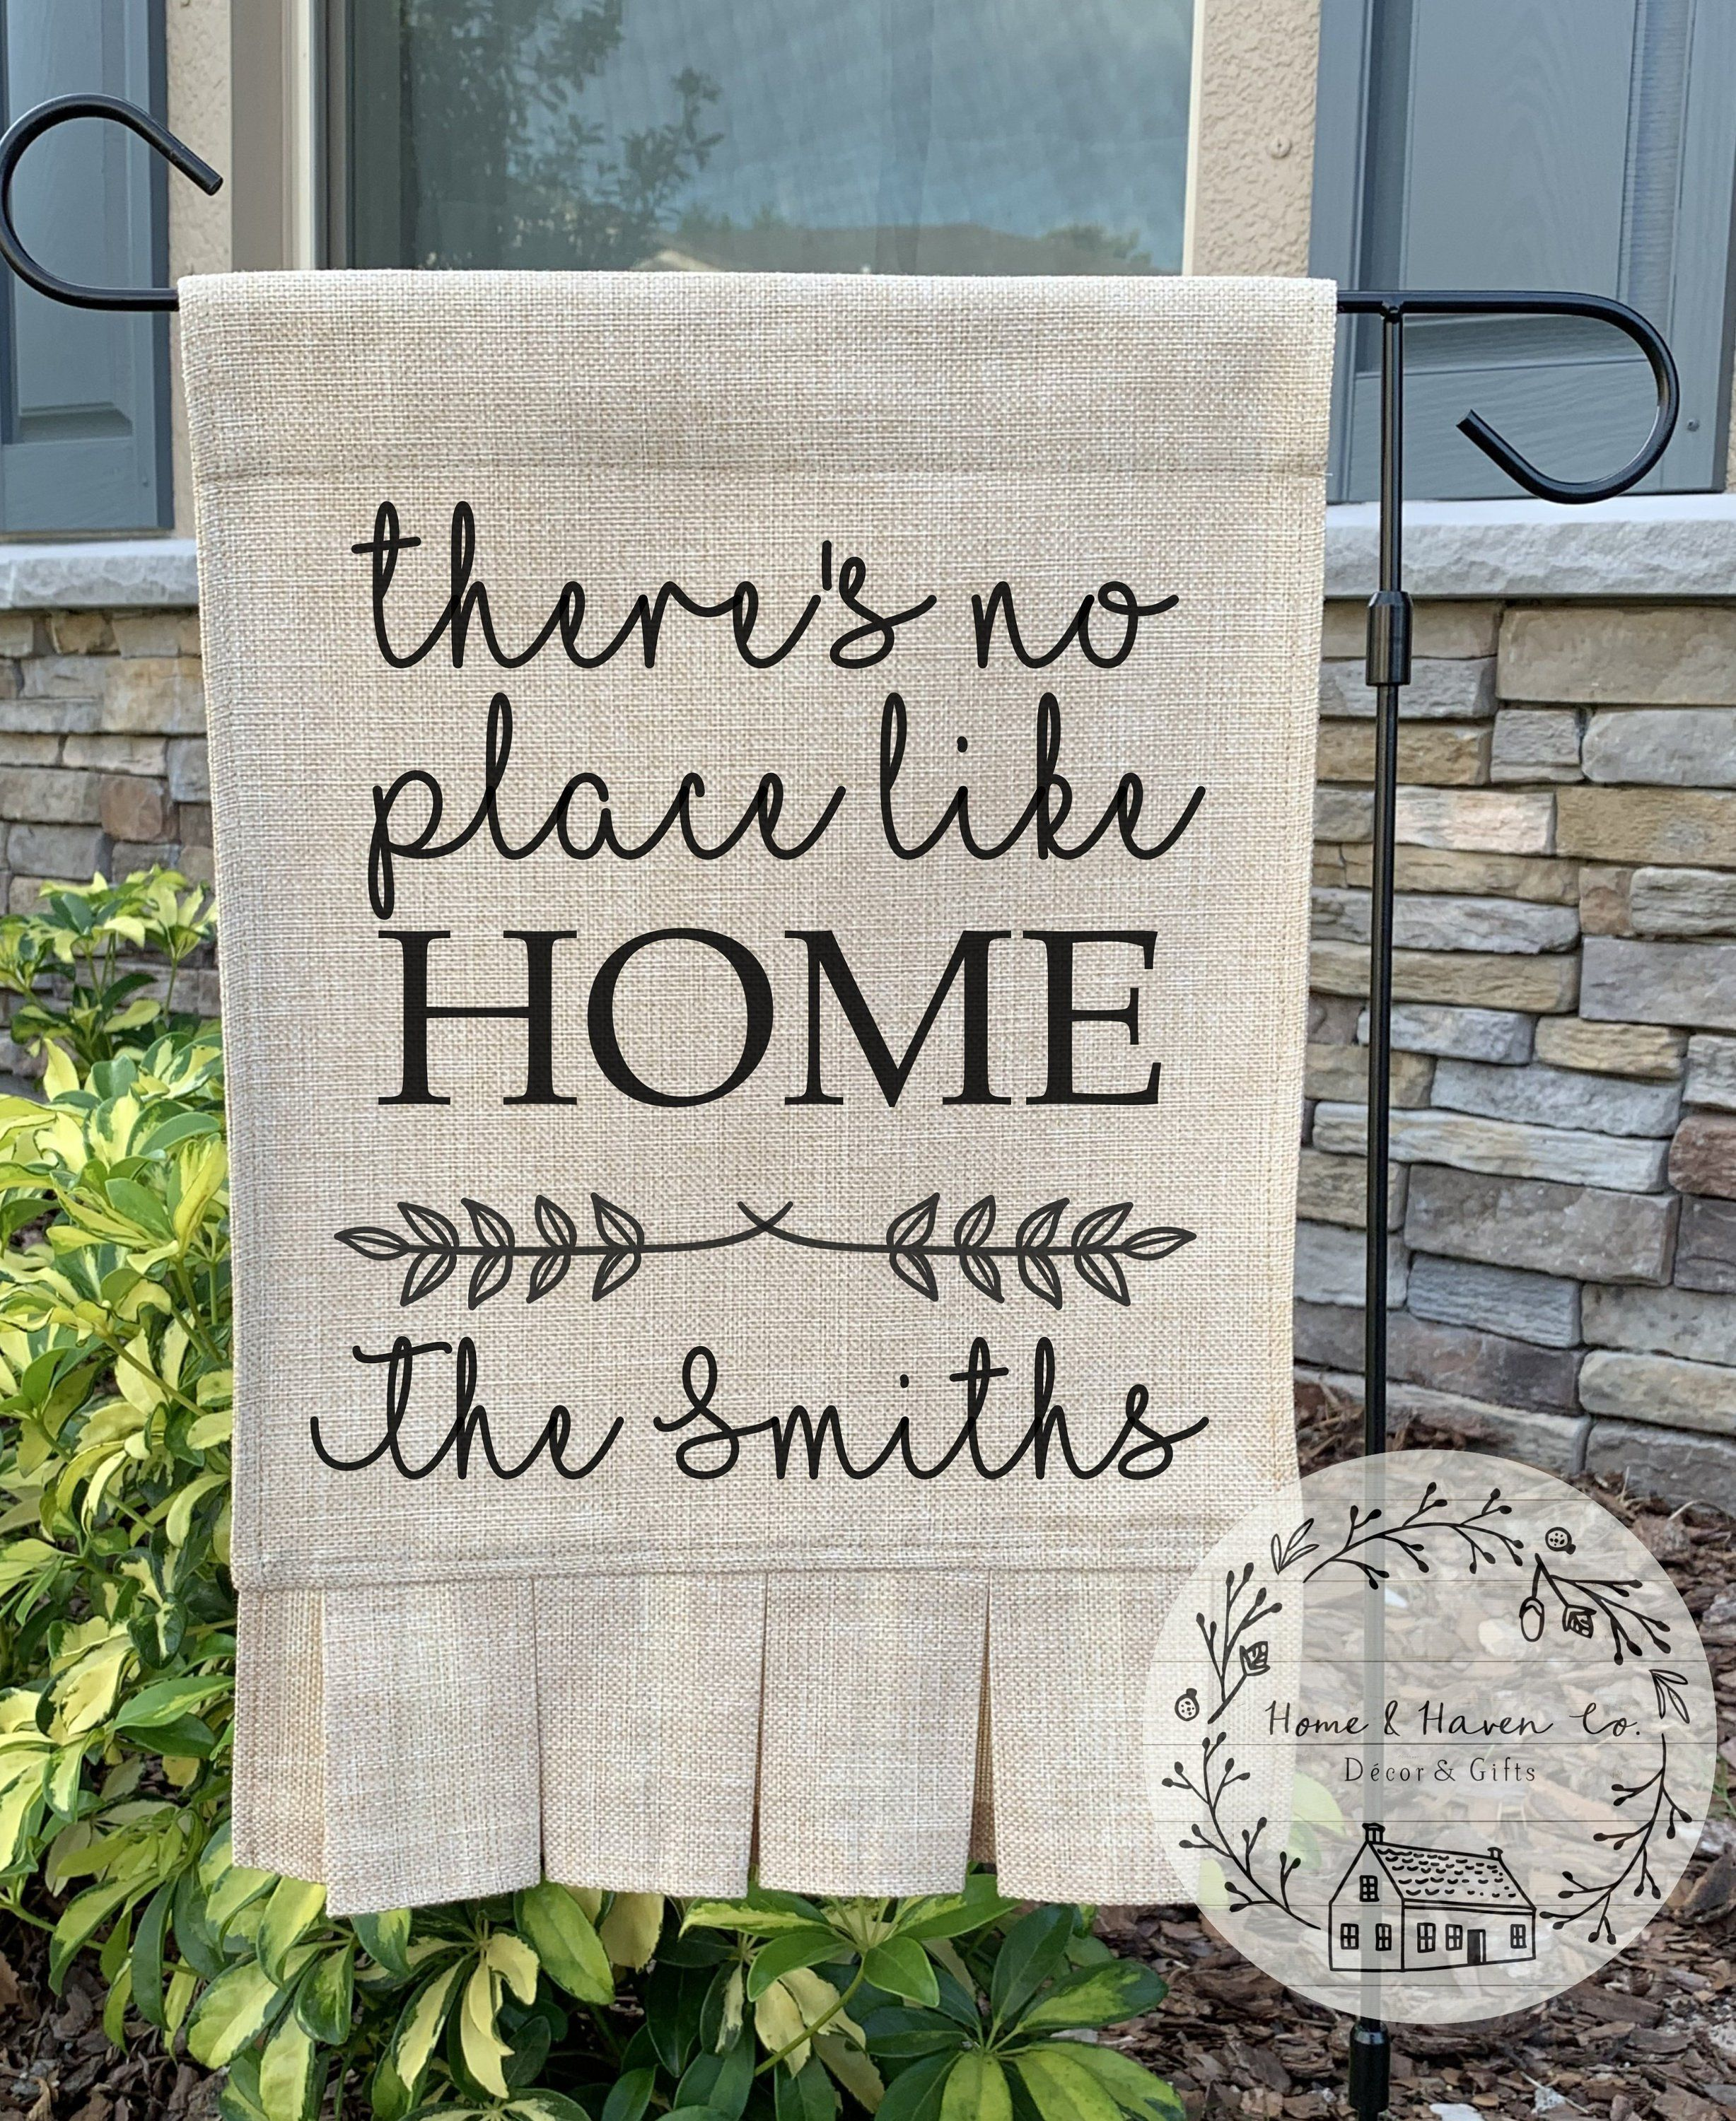 Personalized Garden Flag Personalized Burlap Garden Flag Custom Flag Family Name Flag Outdoor Decor There S No Place Like Home In 2020 Personalized Garden Flag Burlap Garden Flags Garden Flags